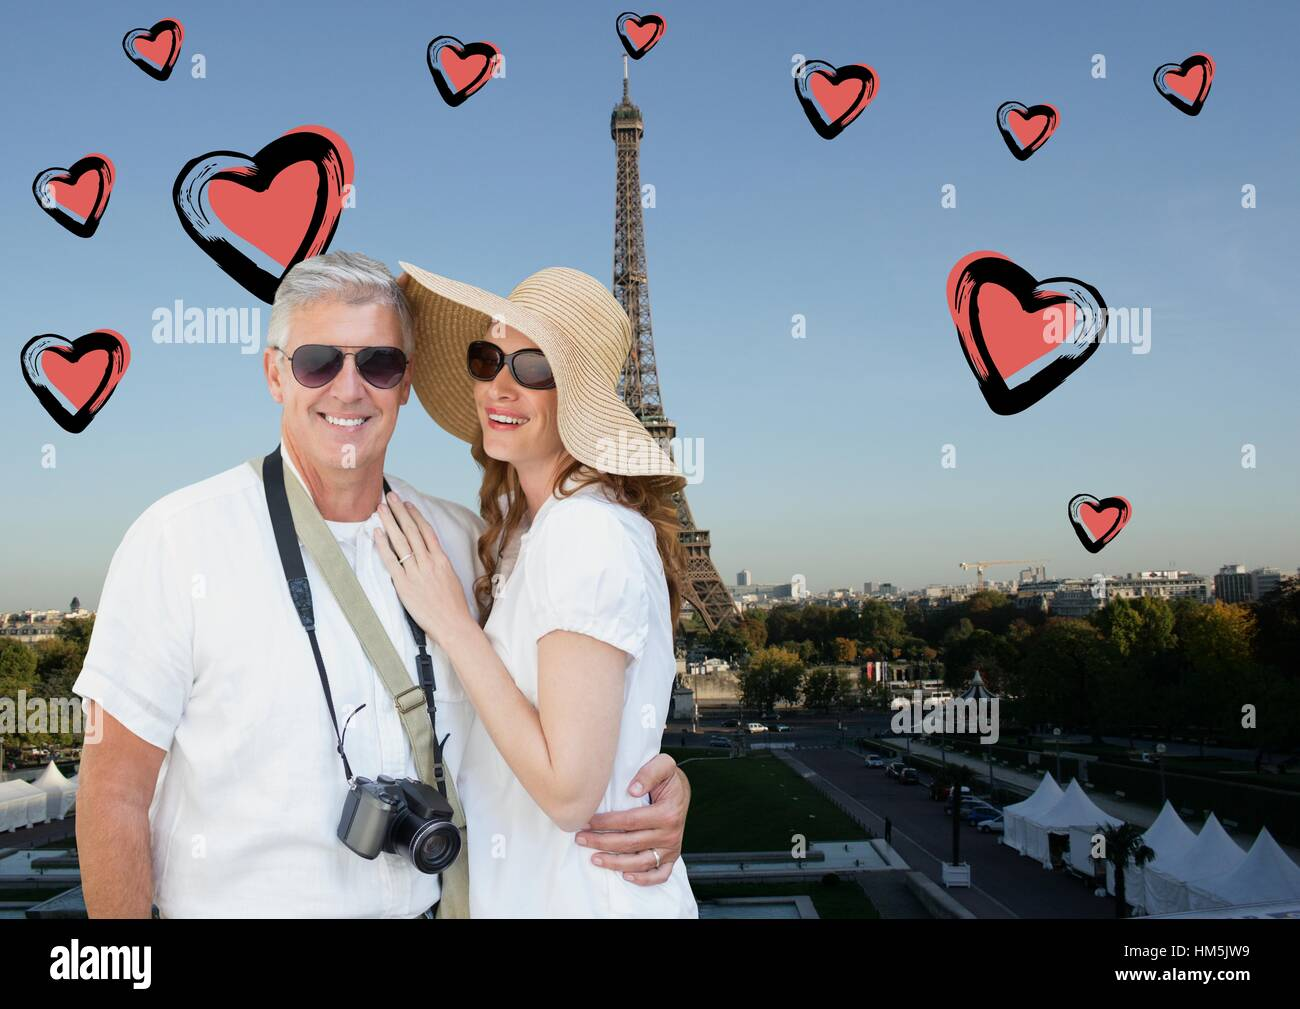 Composite image of couple standing against digitally generated eiffel tower and hearts - Stock Image